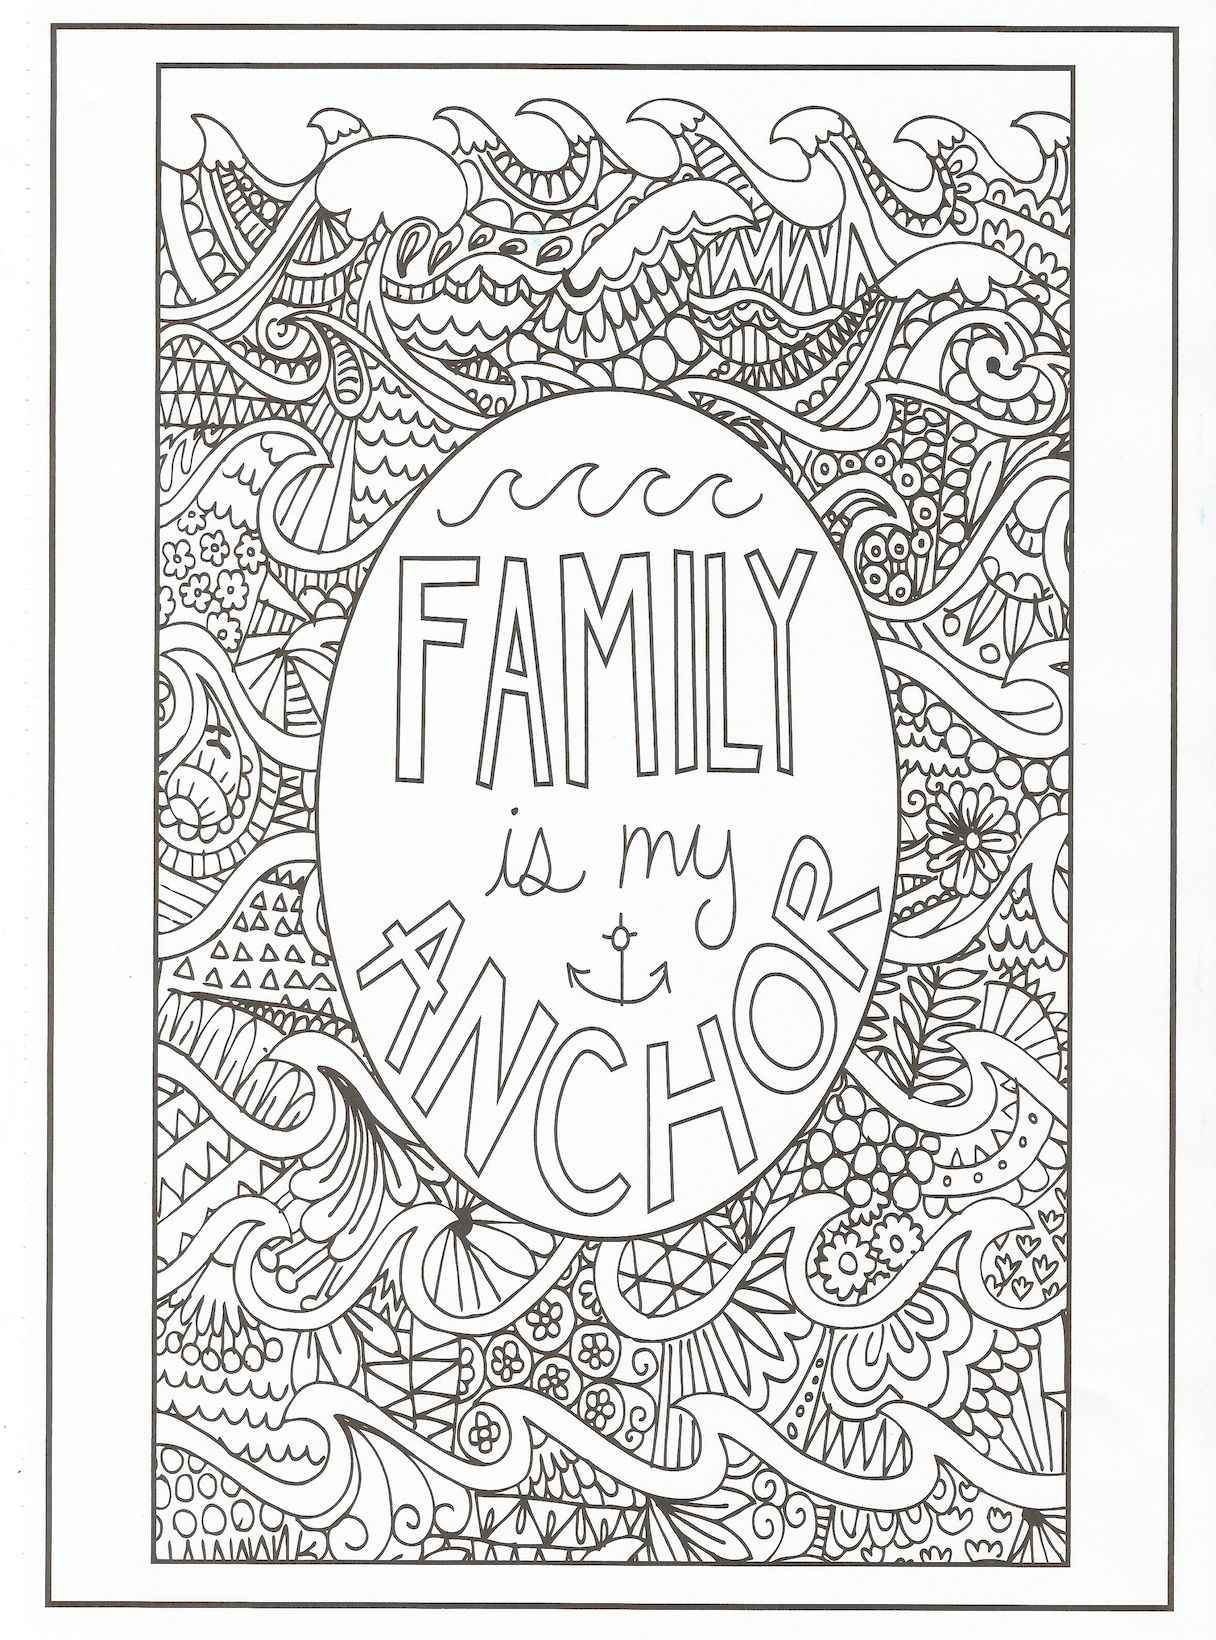 Timeless Creations Creative Quotes Coloring Page